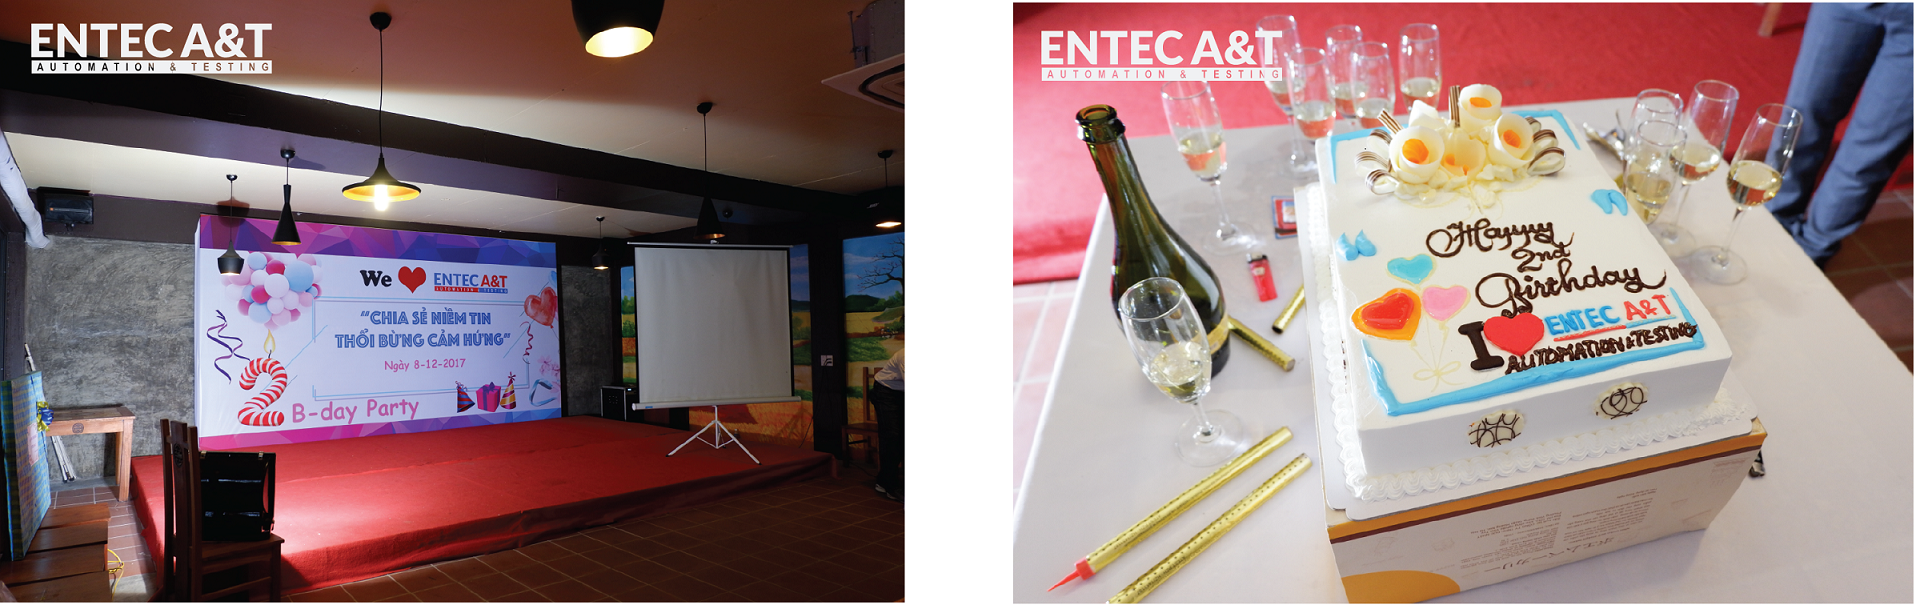 ENTEC A&T Celebrates the 2nd Birthday Anniversary - ENTEC A&T